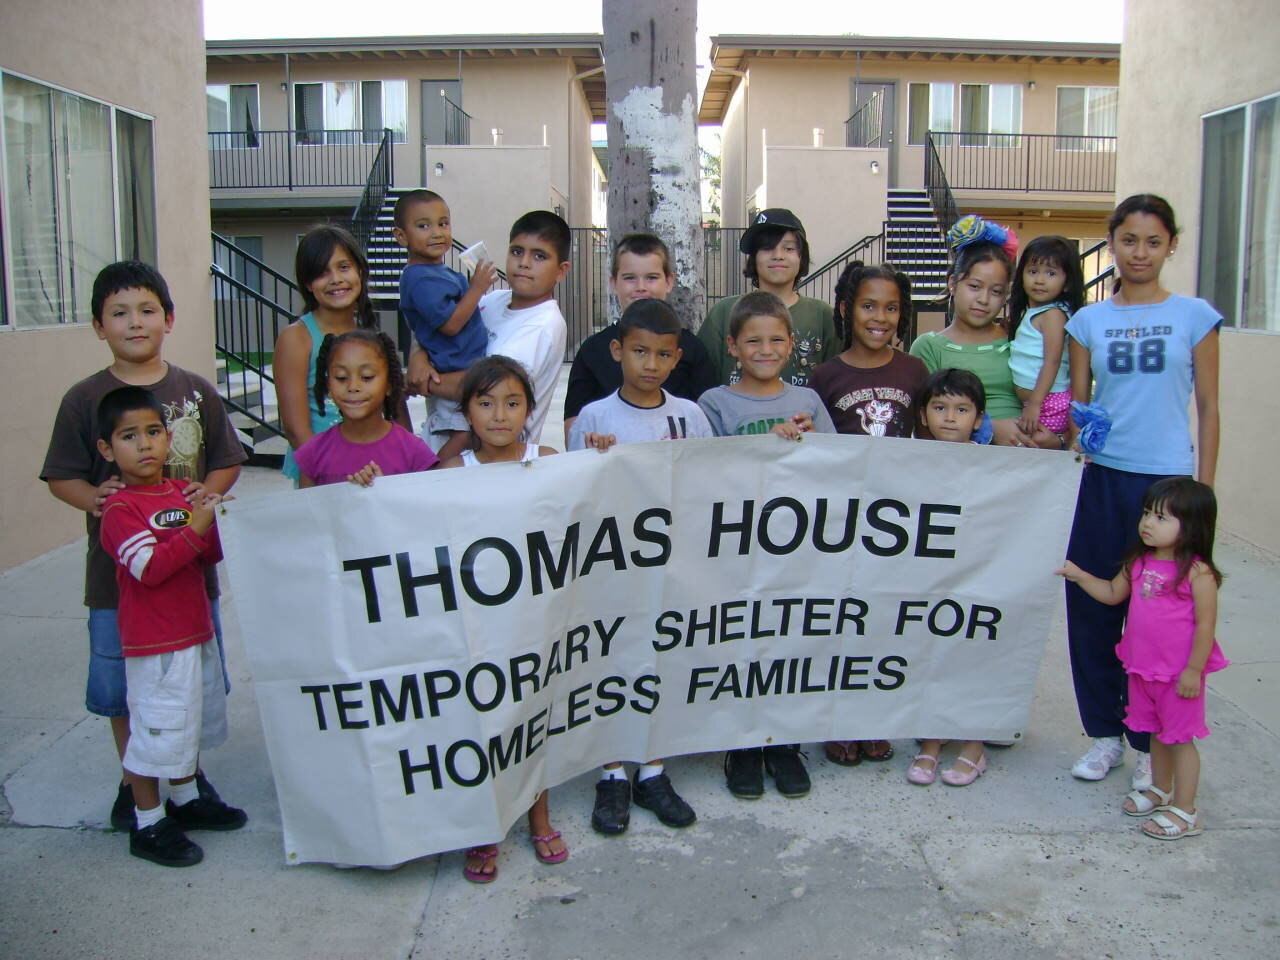 The mission of Thomas House is to provide a safe, supportive environment and the resources necessary for homeless families with children to remain together while empowering them to become independent and self-sufficient.